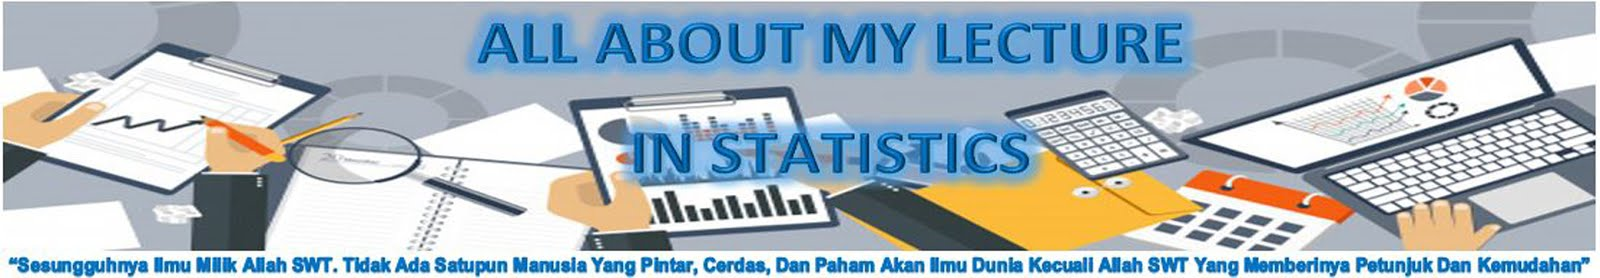 All About My Lecture In Statistics